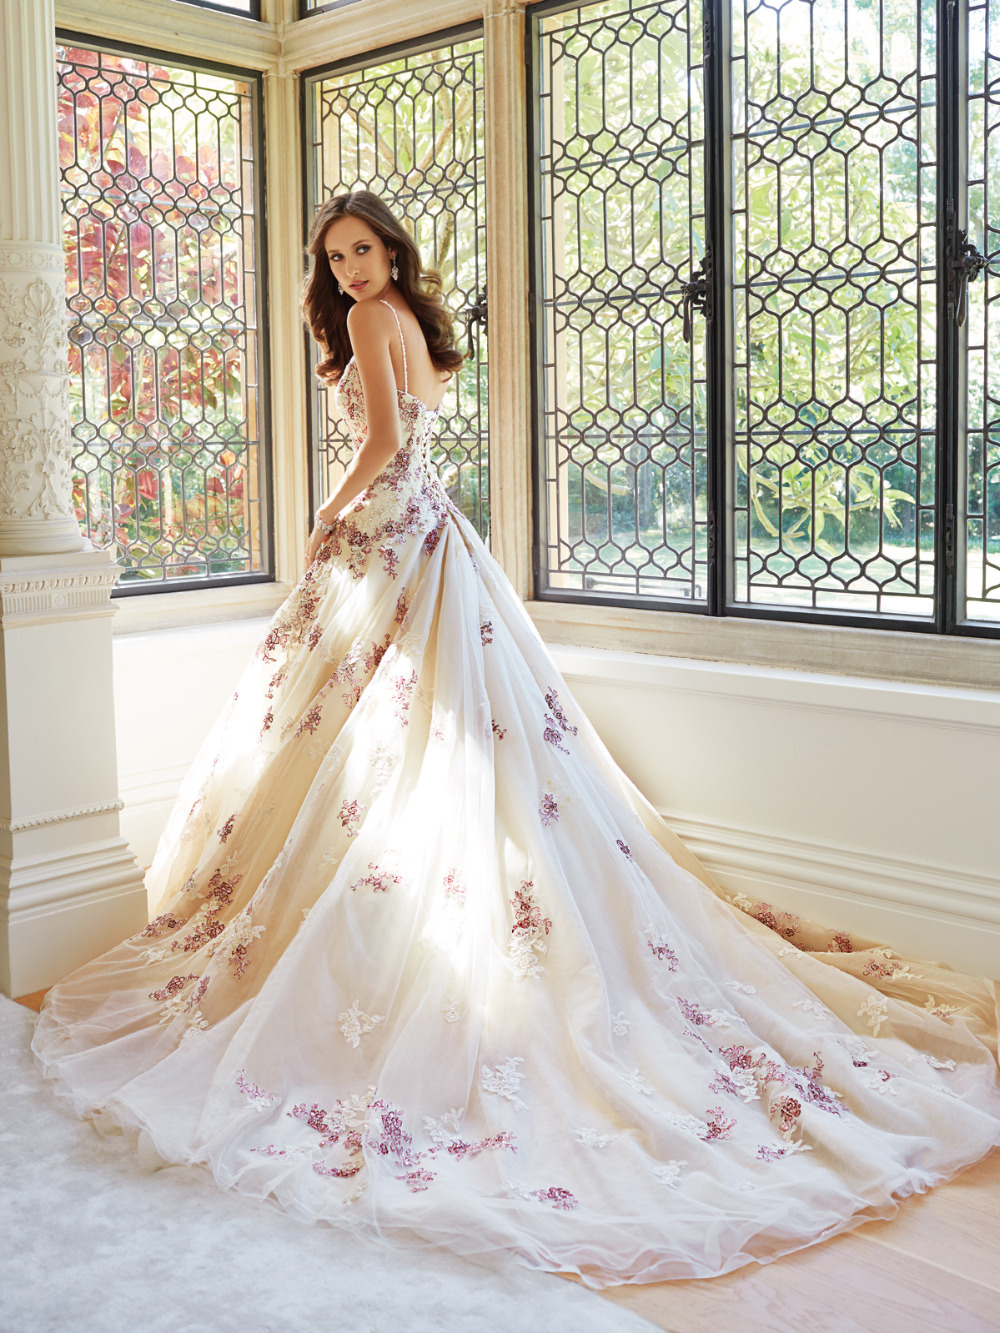 Vintage Multi Colored Wedding Dresses Lace Backless 2015 Women Vestidos  Novia Spaghetti Staps A Line Long Bridal Gown With Train In Wedding Dresses  From ...